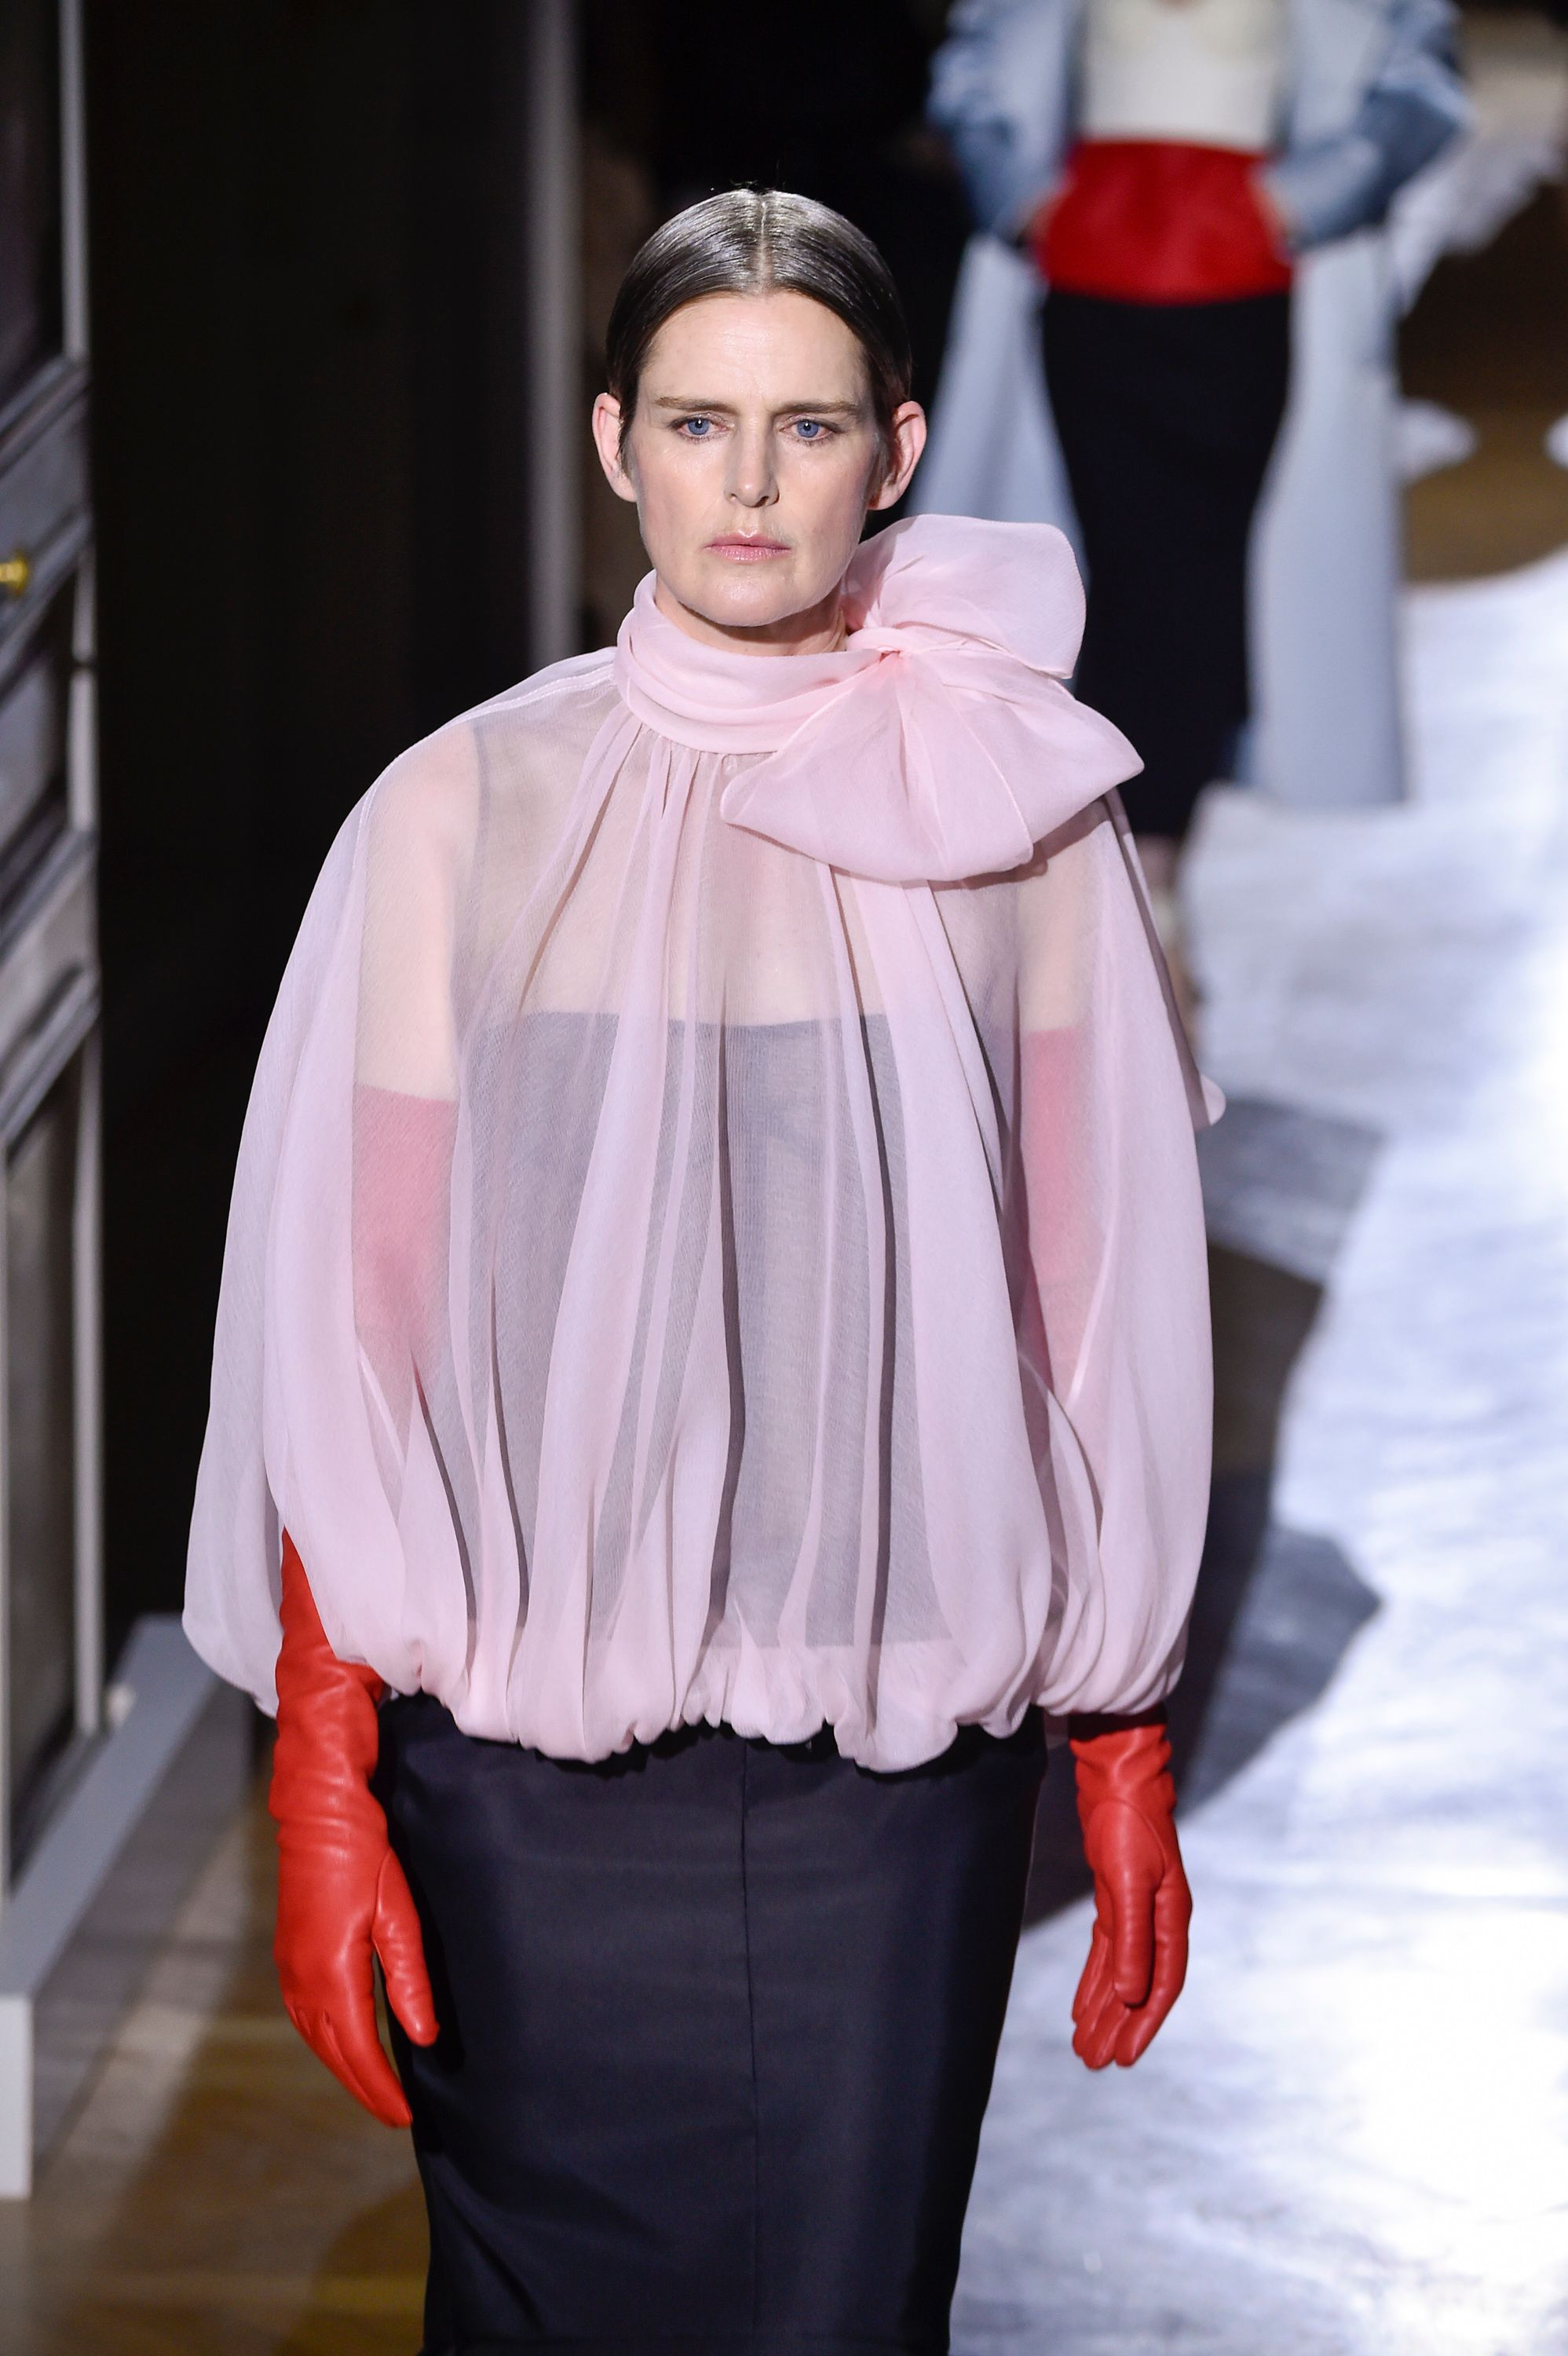 Stella Tennant walks the runway during the Valentino Haute Couture Spring/Summer 2020 at the Paris Fashion Week on January 22, 2020 in France. | Photo: Getty Images